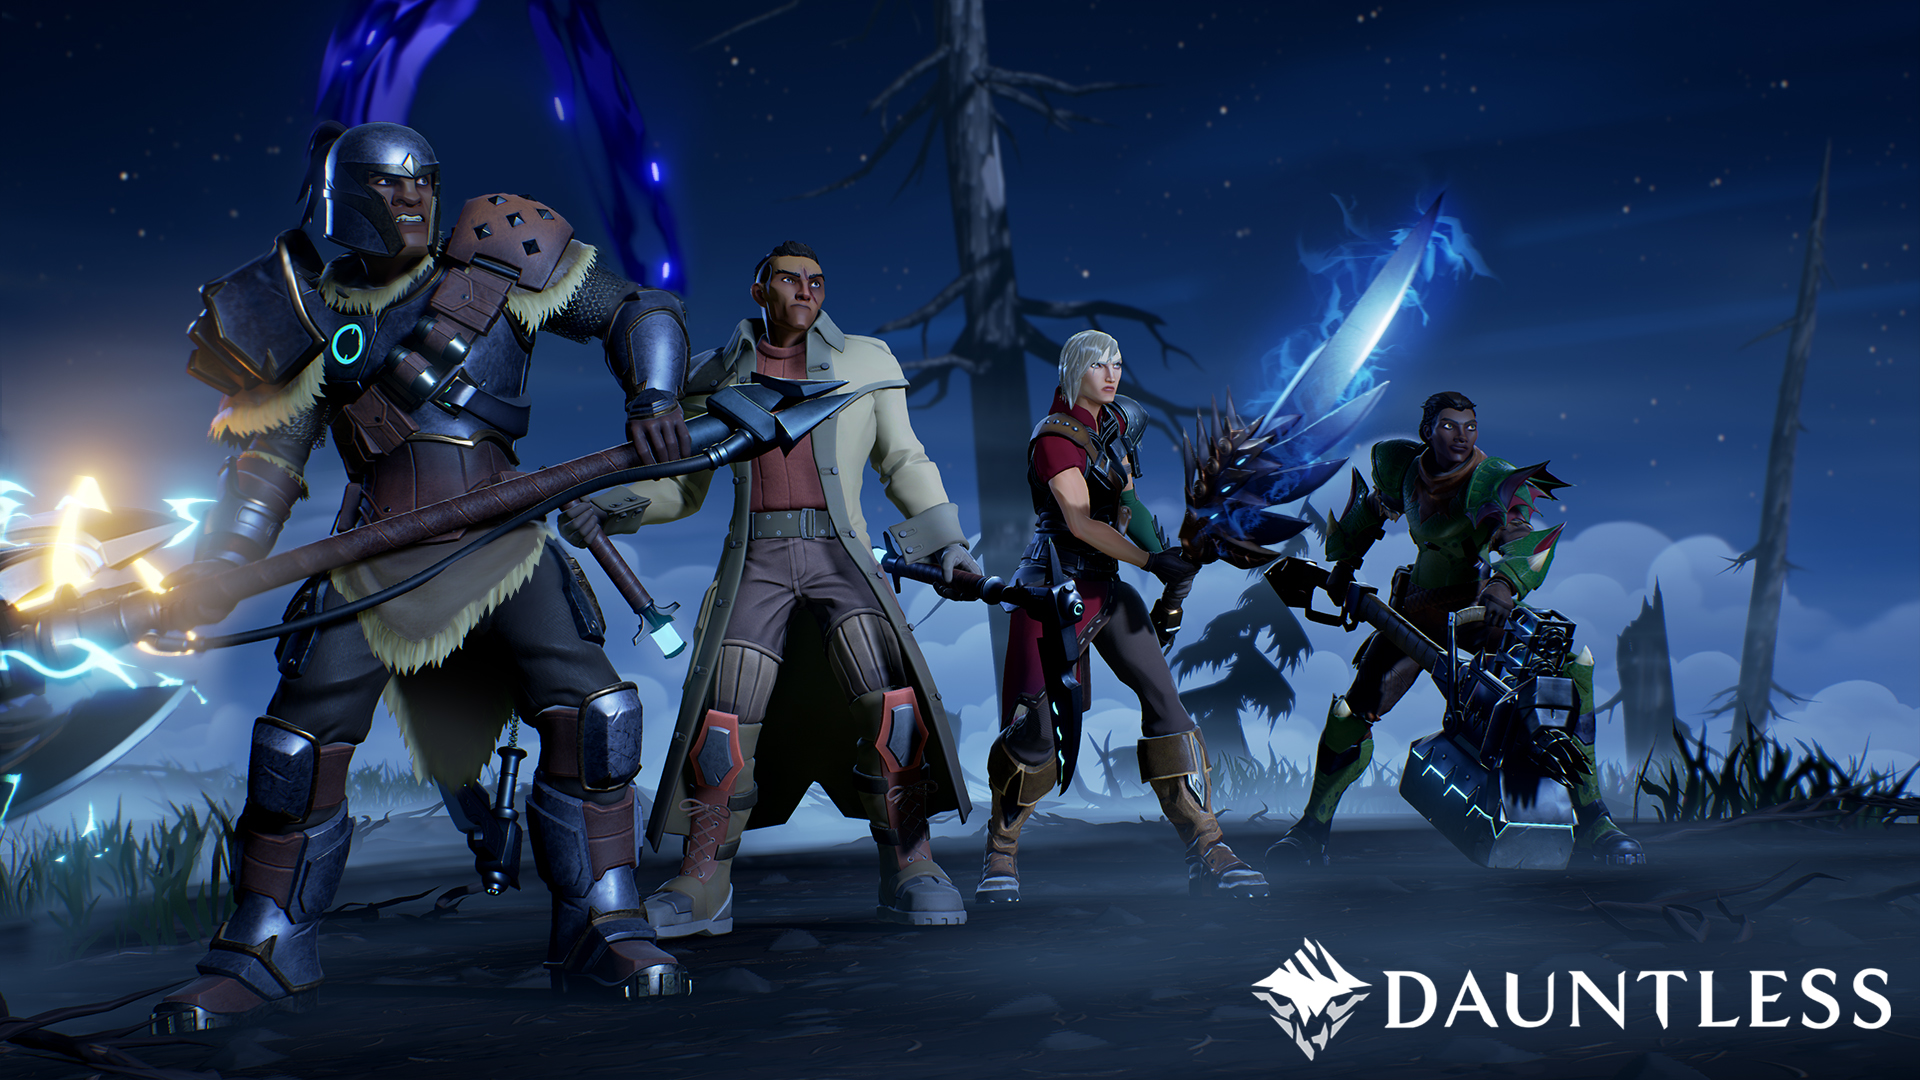 Dauntless Slayer Tier Founders Pack